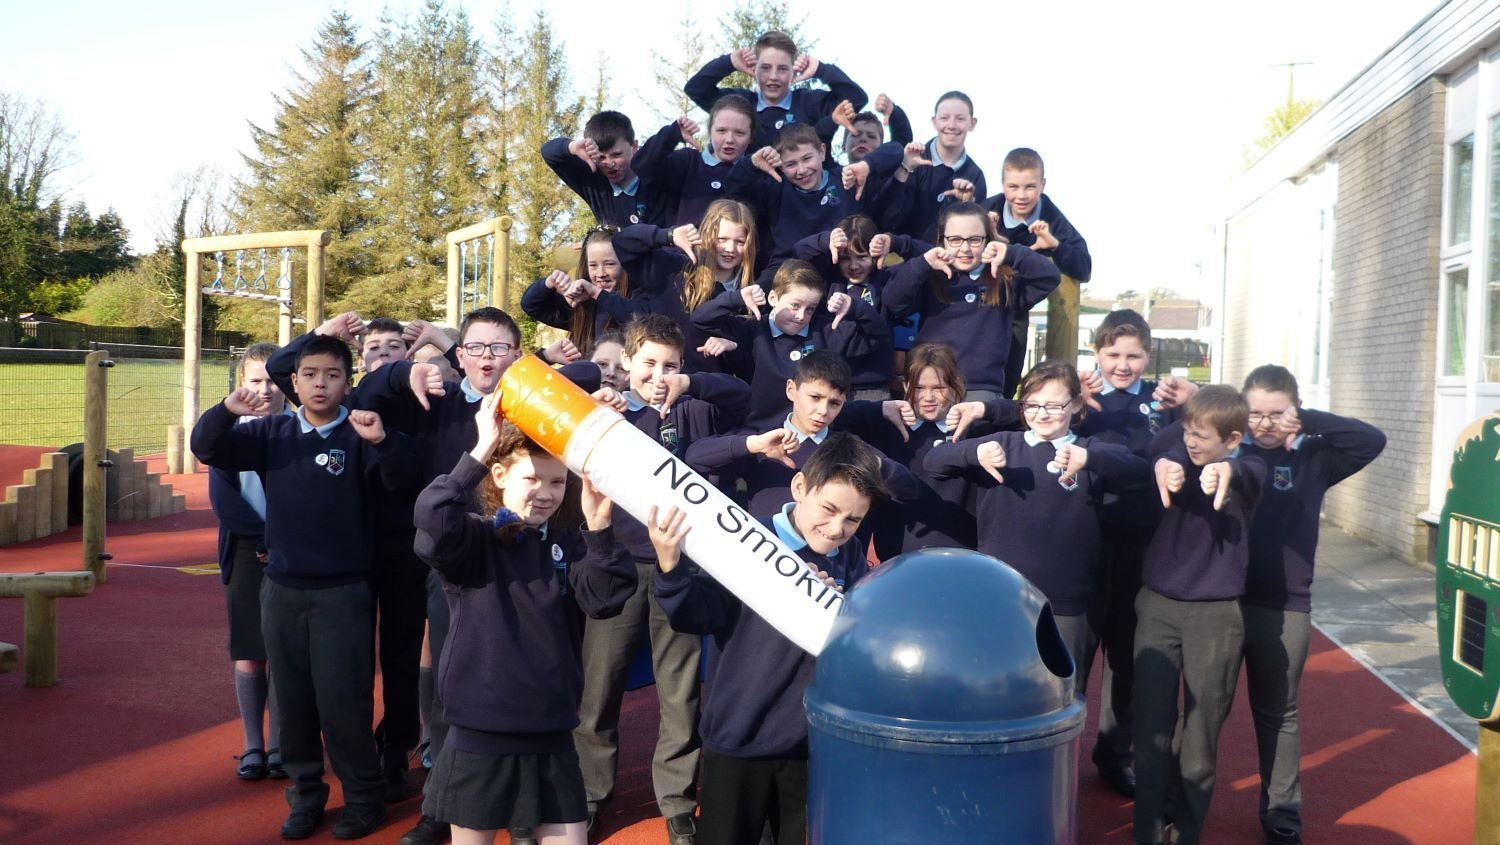 Garvagh Primary School, Garvagh